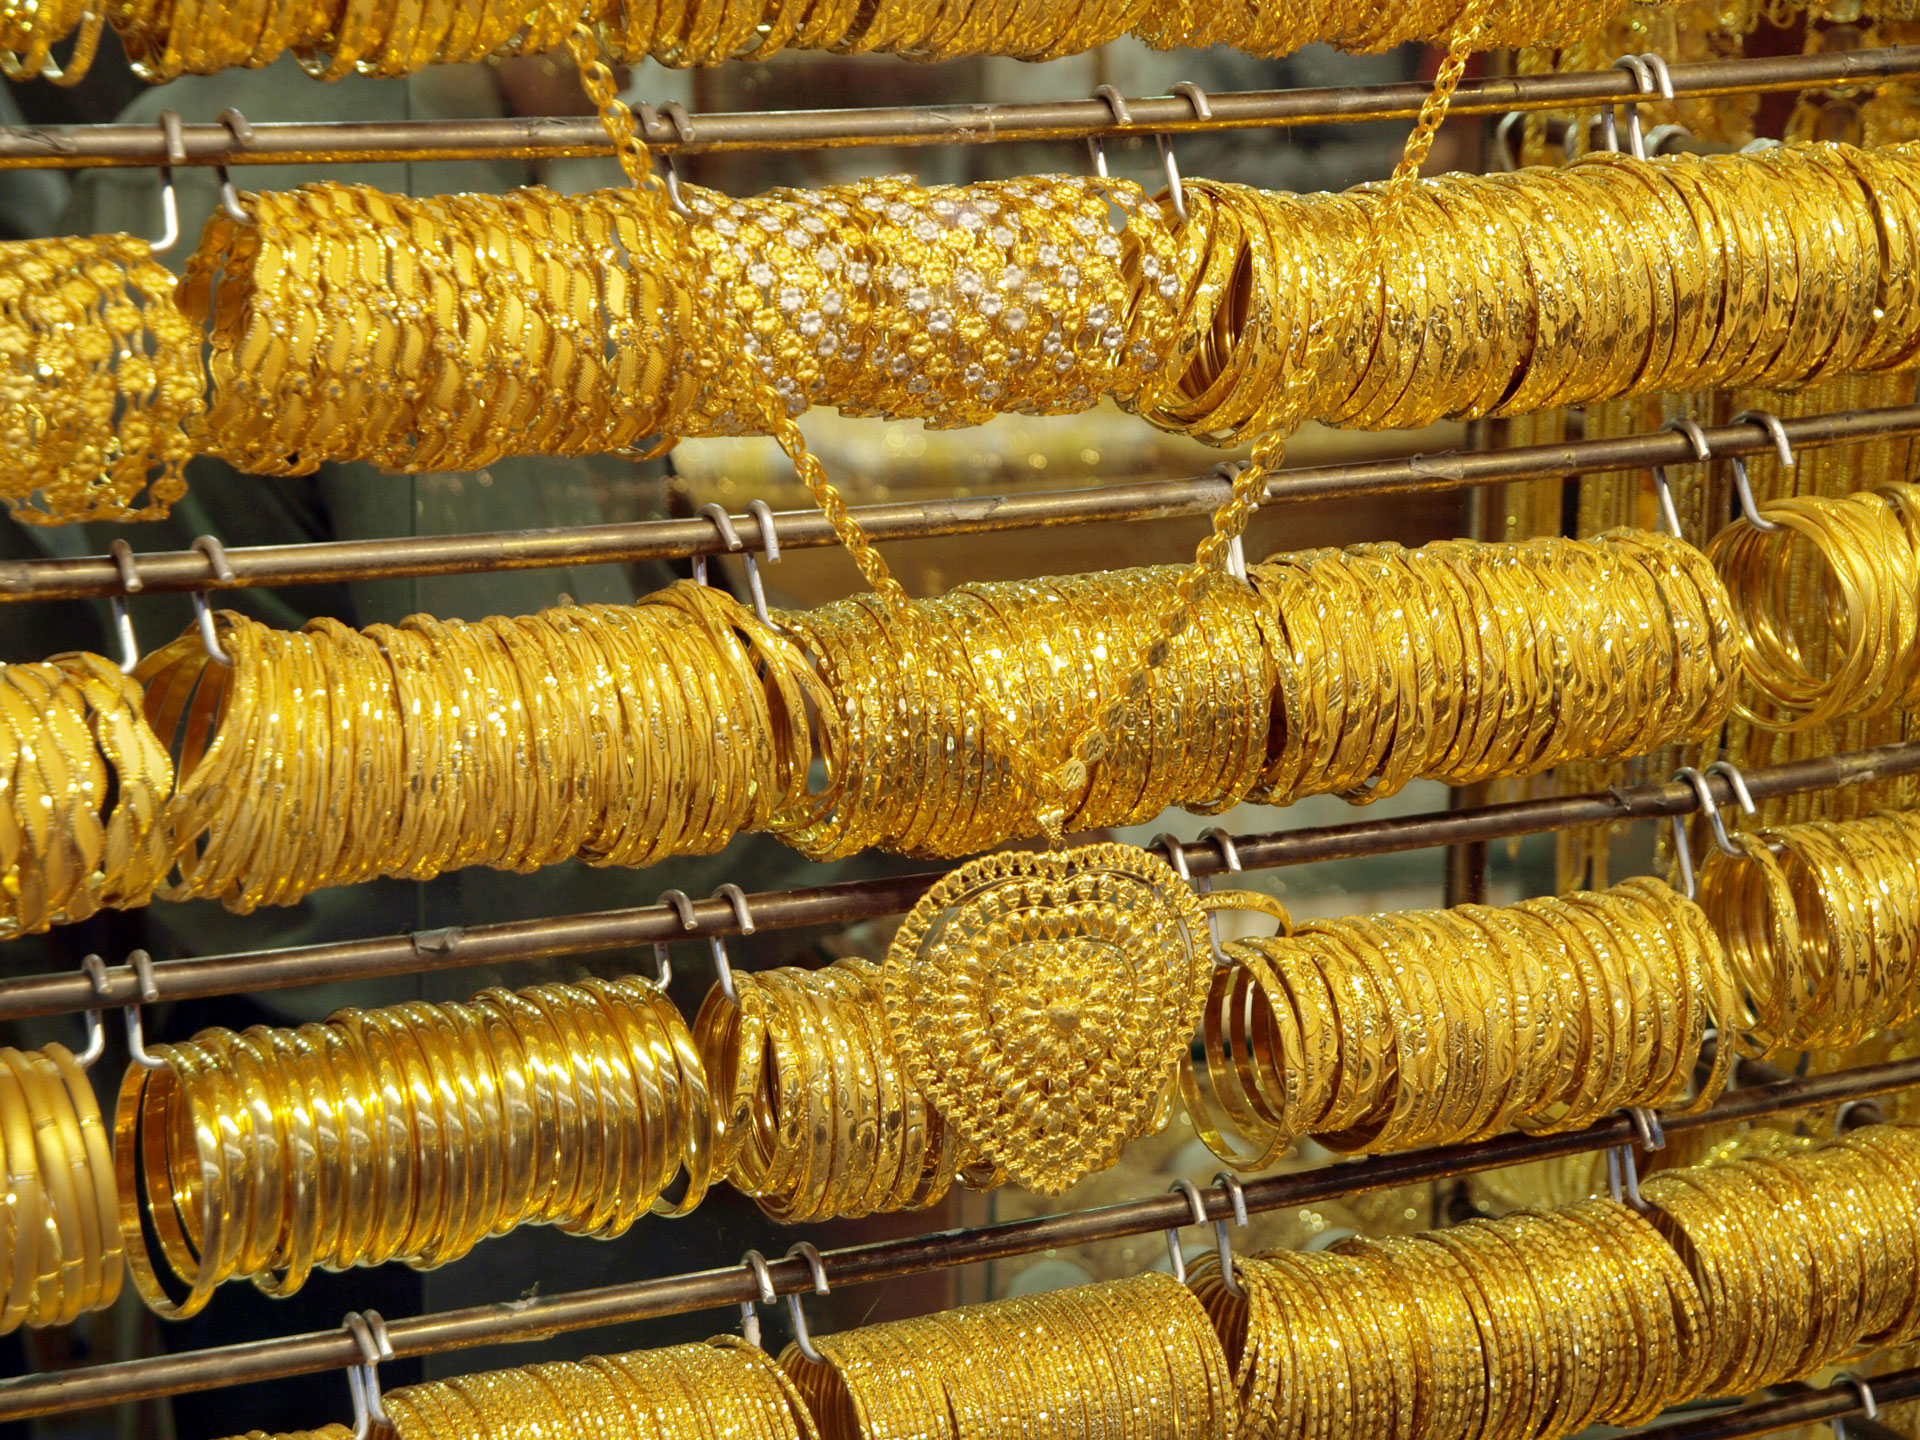 Racks of gold bracelets and gold necklace